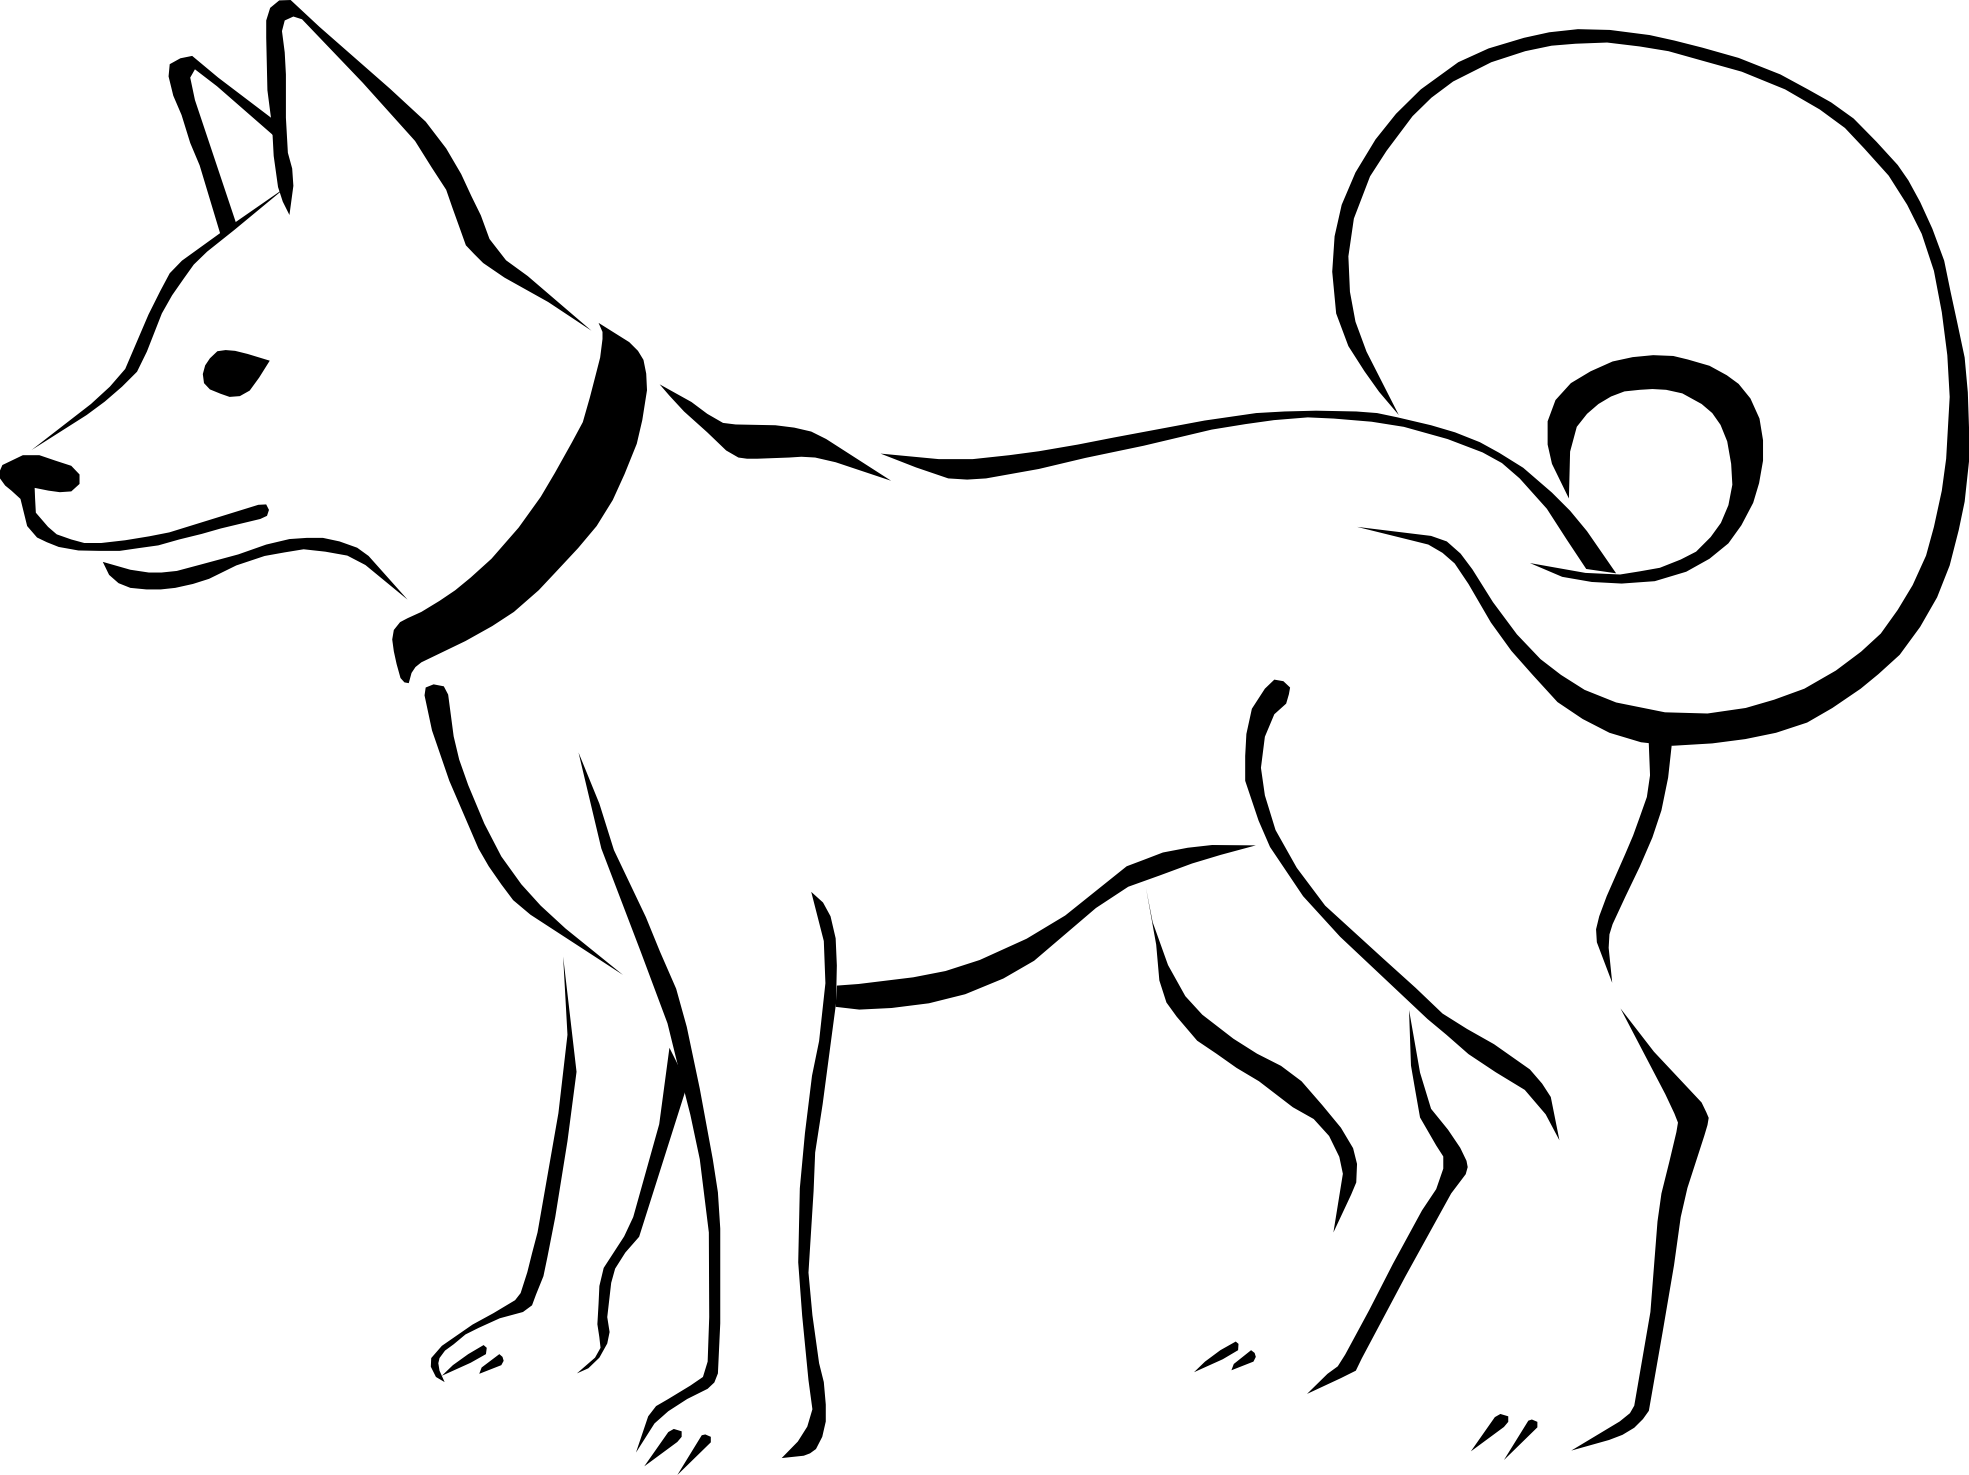 Inside house clipart black and white picture black and white download White dog clipart png - ClipartFest picture black and white download